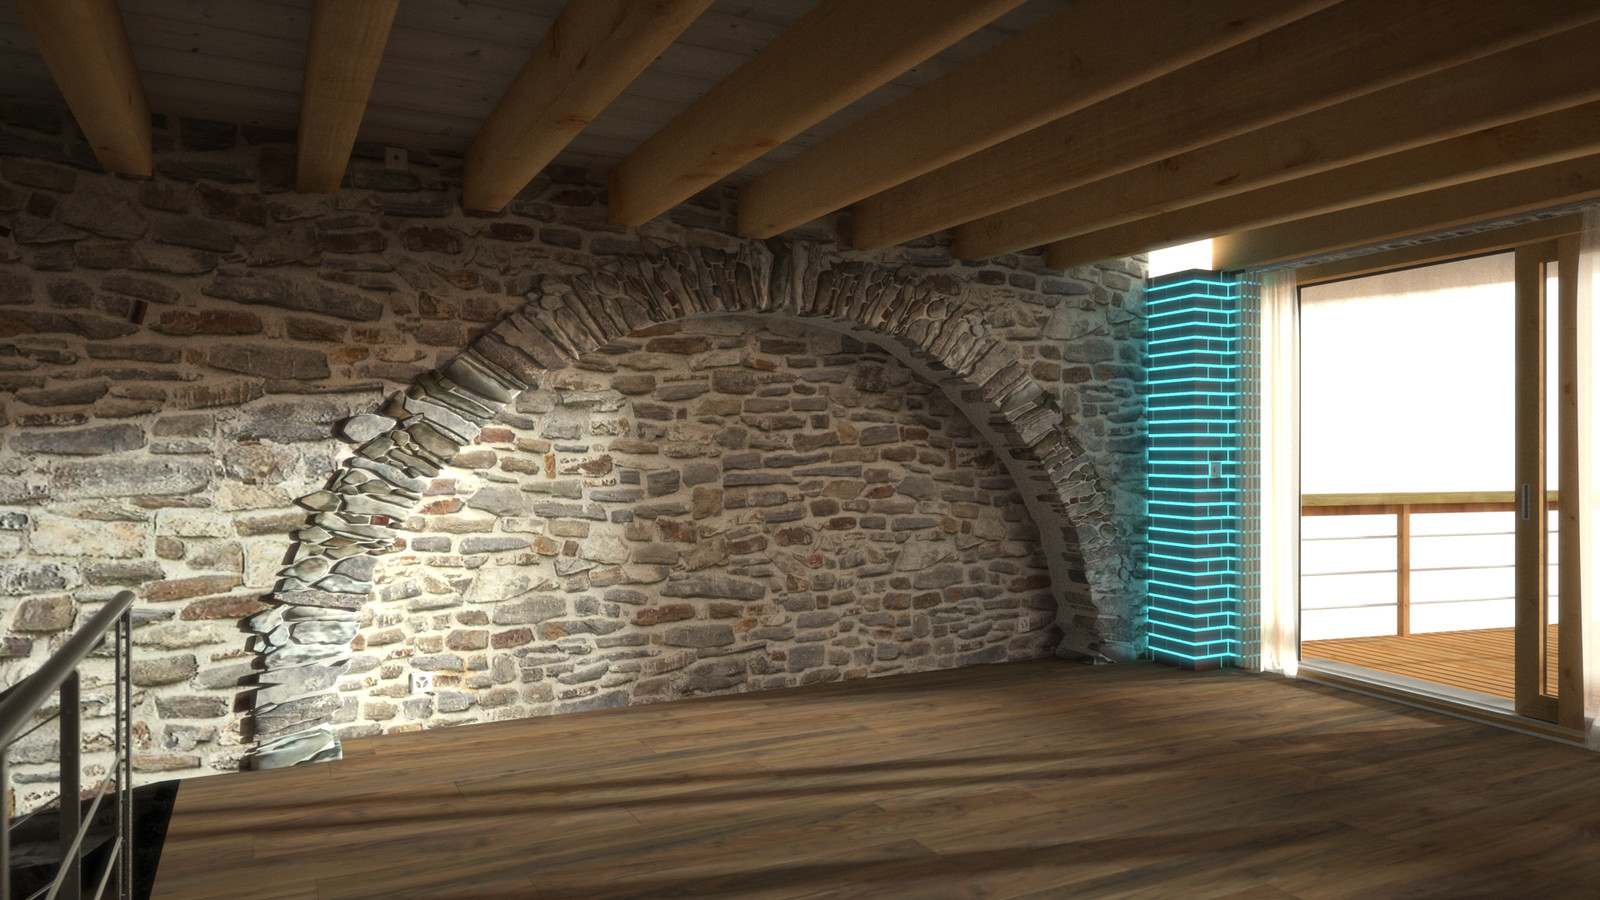 Joint with individual Bricks